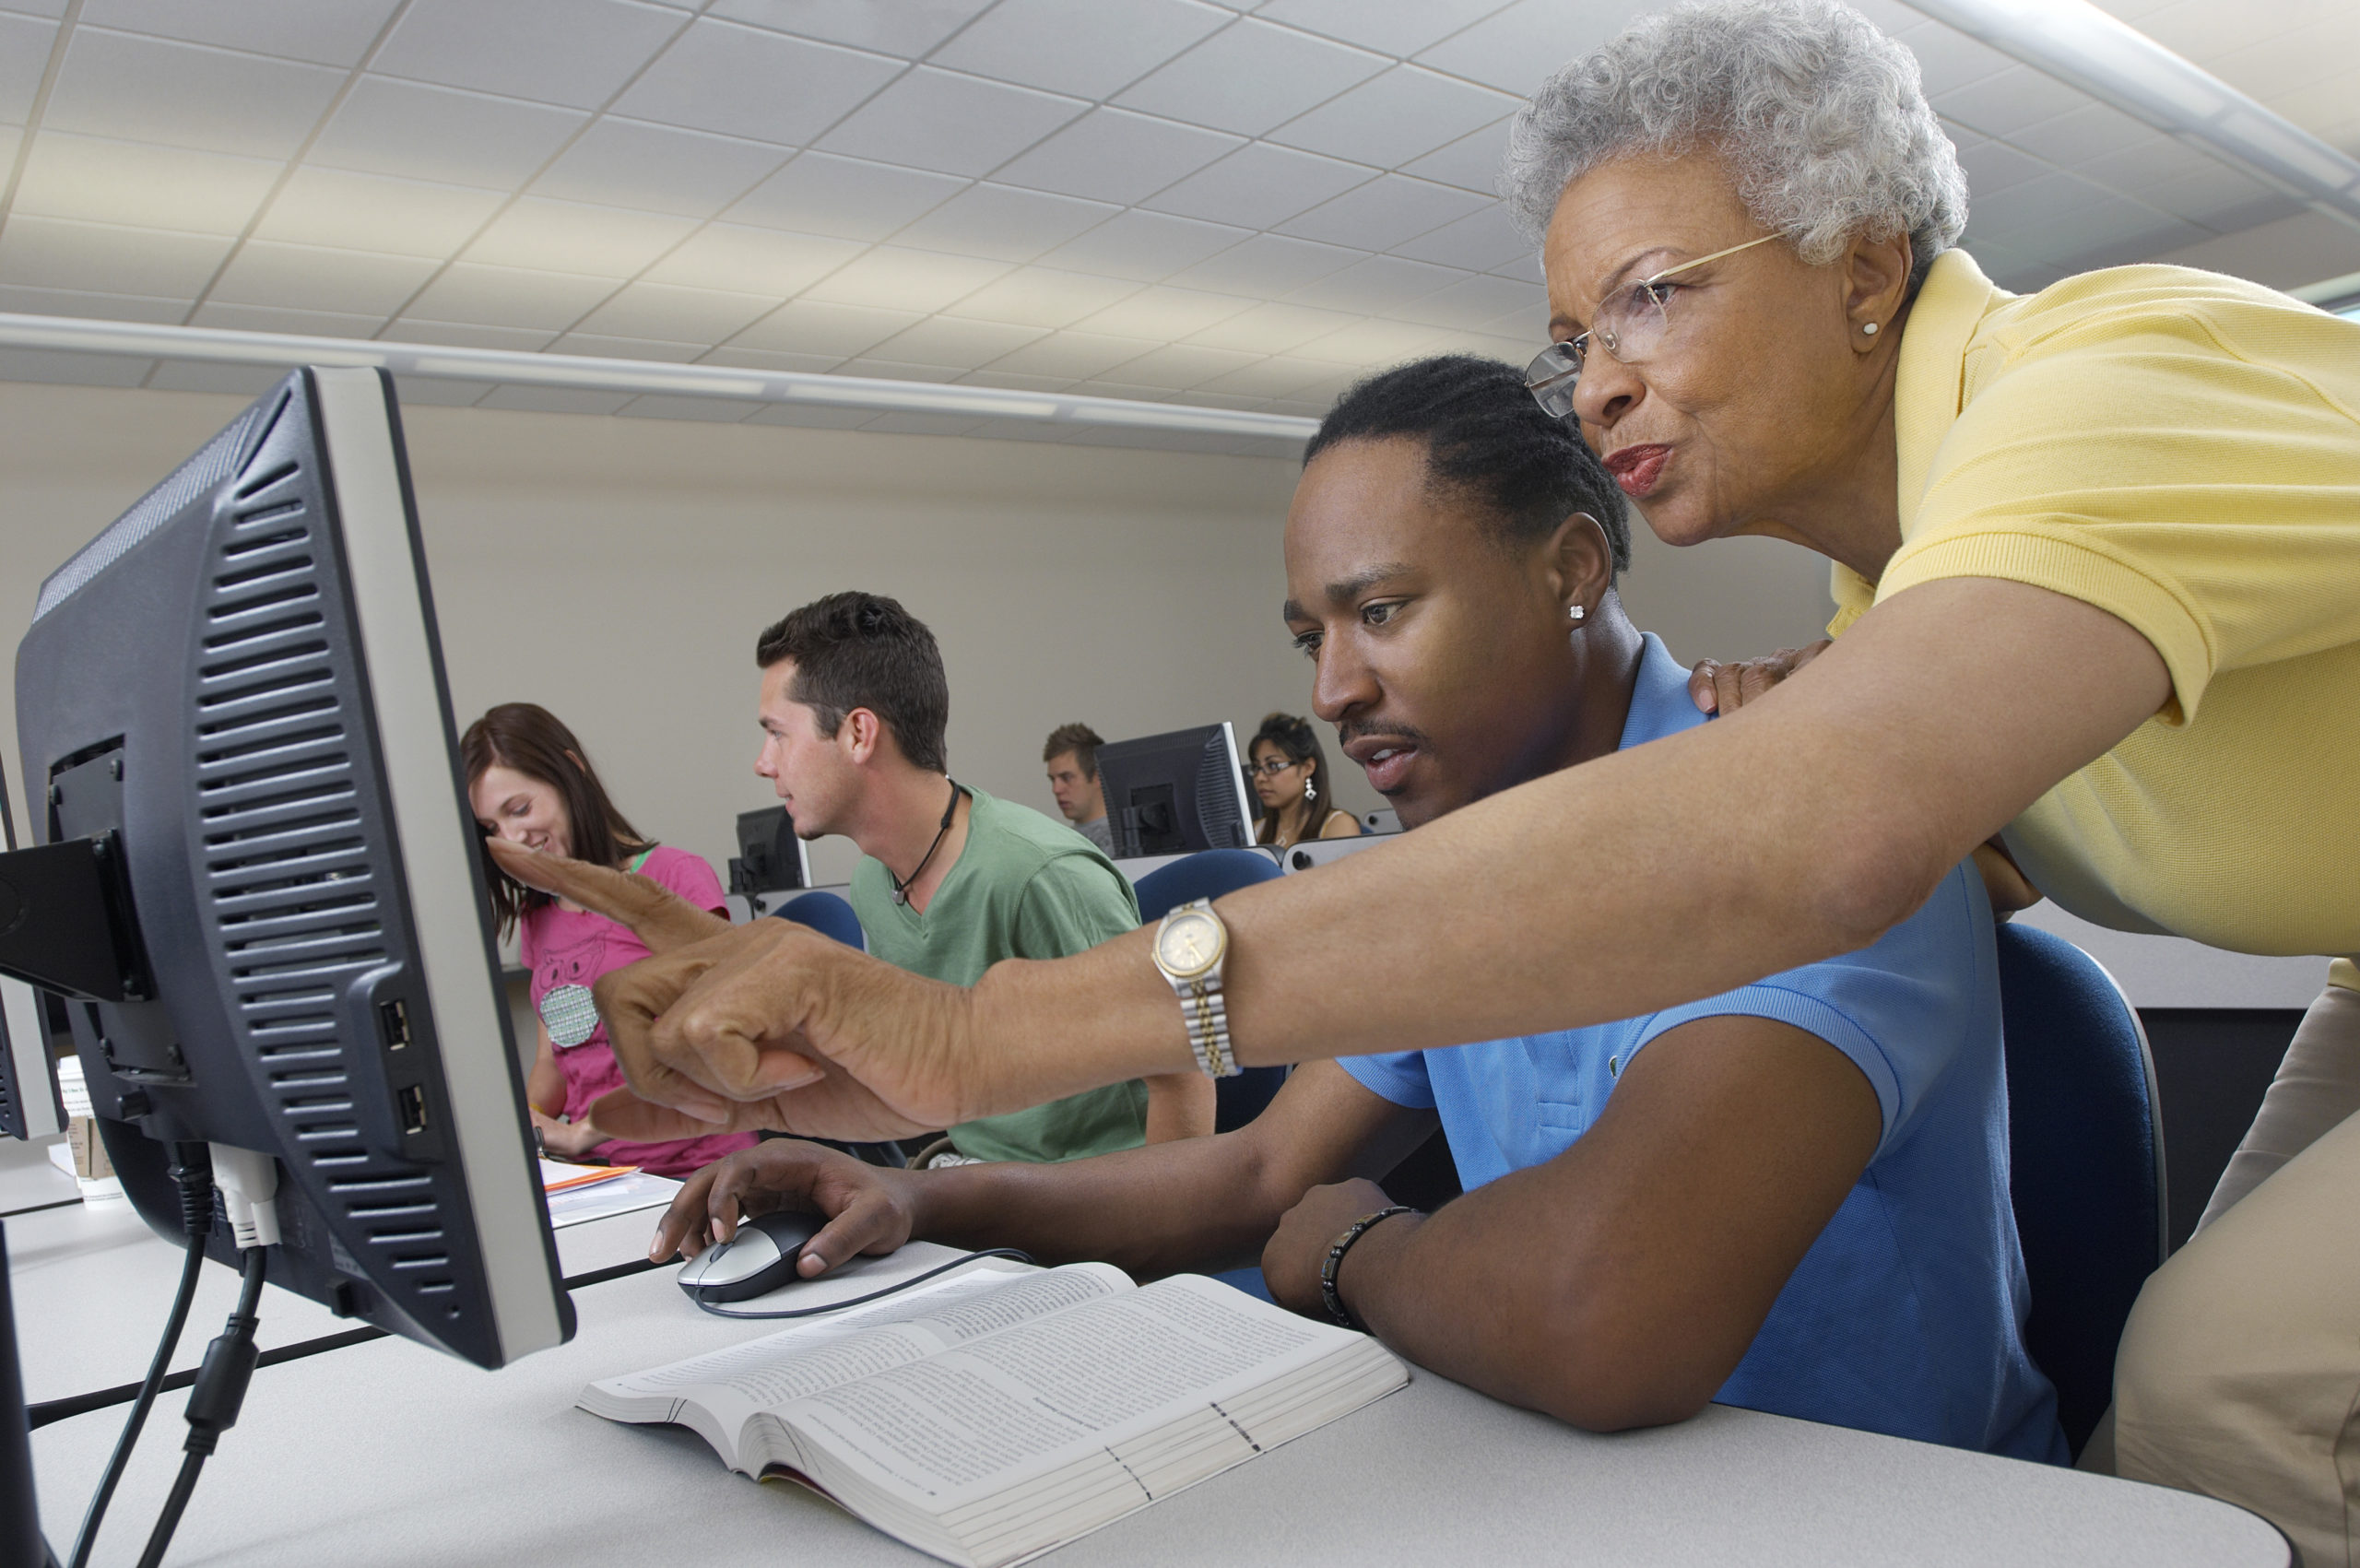 Senior teacher assisting male student during computer class with classmates in the background